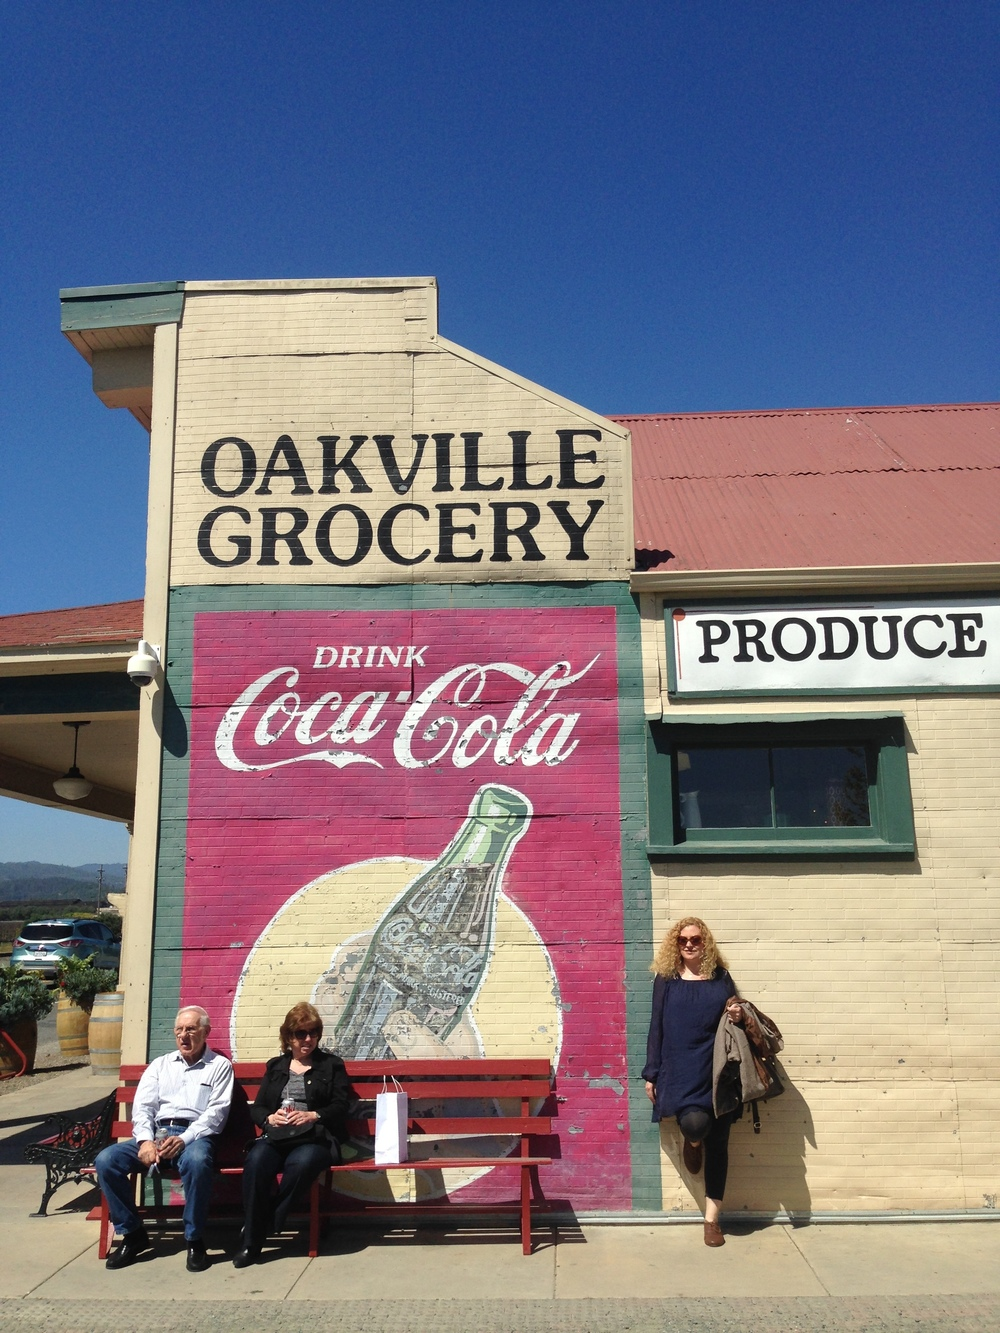 Some total strangers and I at the oldest continually operating Grocery store in California.